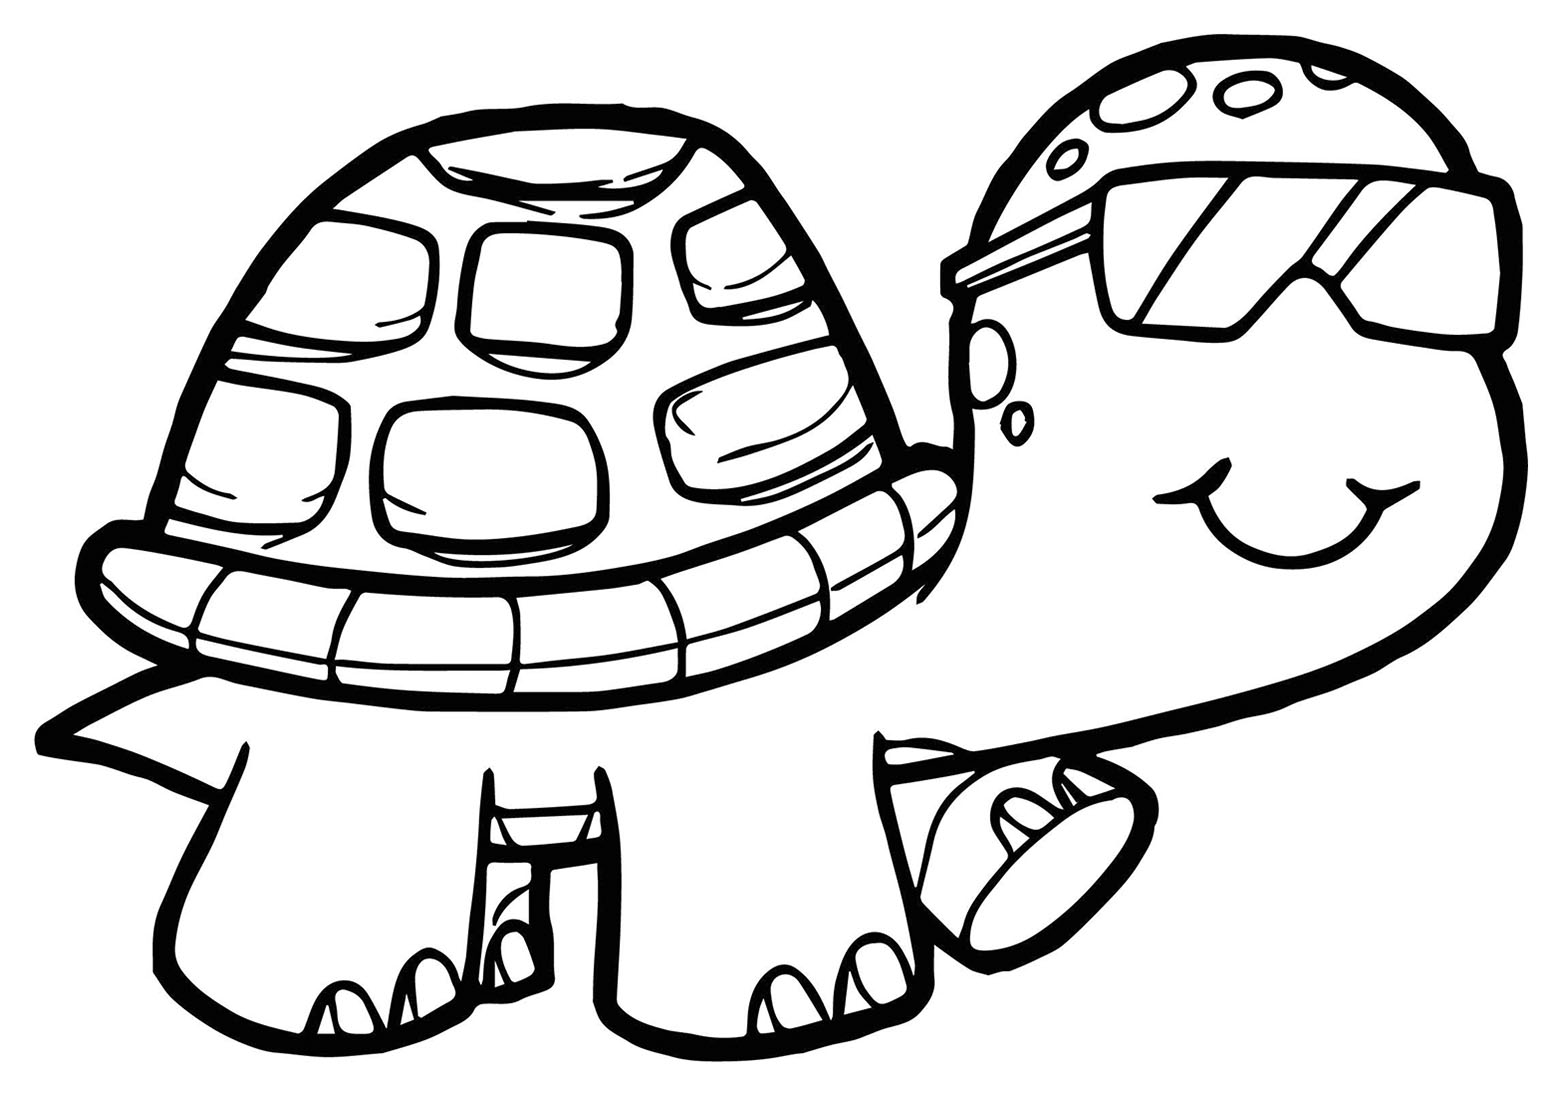 turtle colouring sheets turtles to print for free turtles kids coloring pages sheets colouring turtle